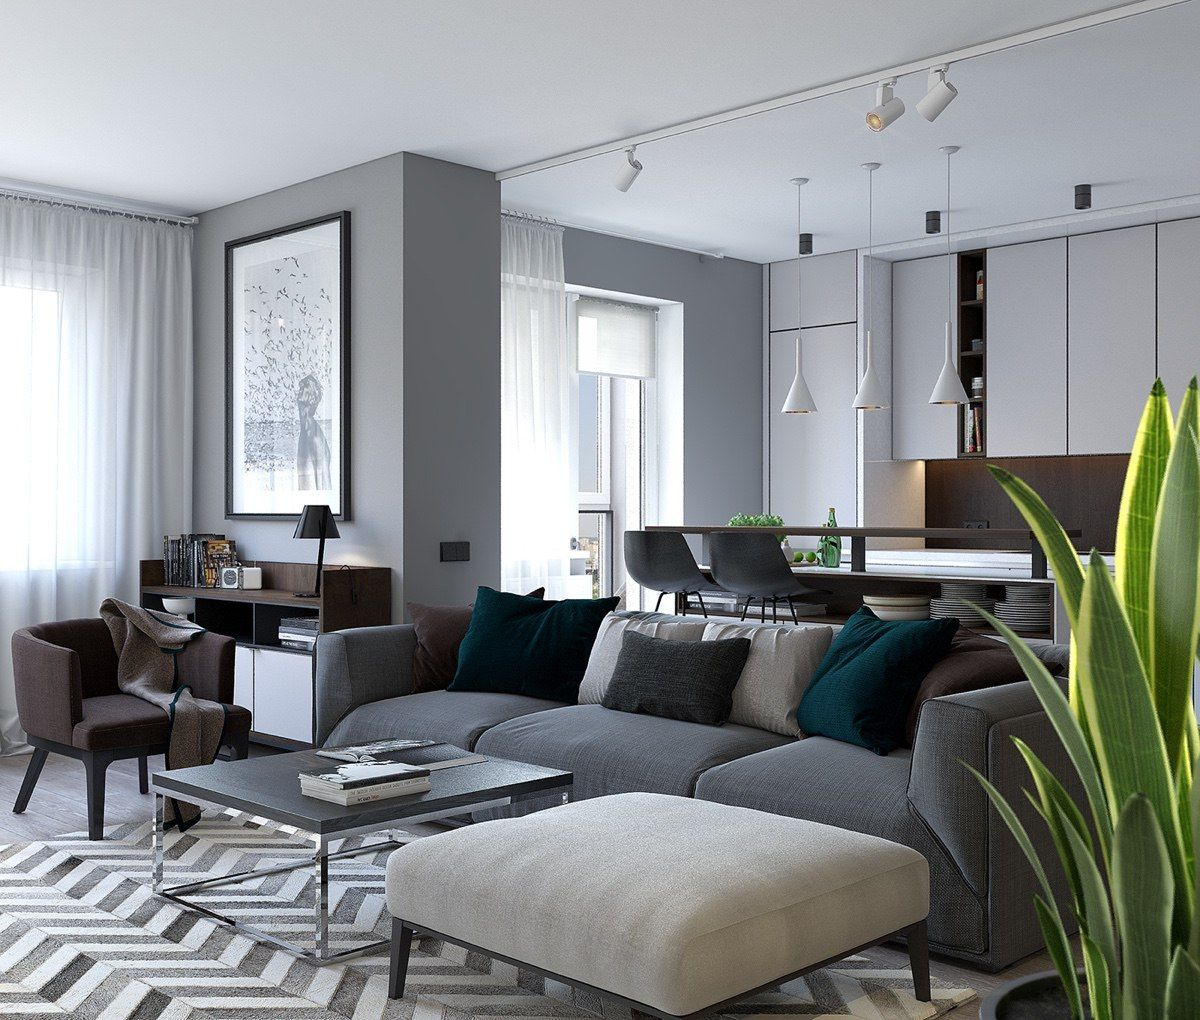 Would you like to arrange your small home interior design with minimalist  and modern decor ideas inside?